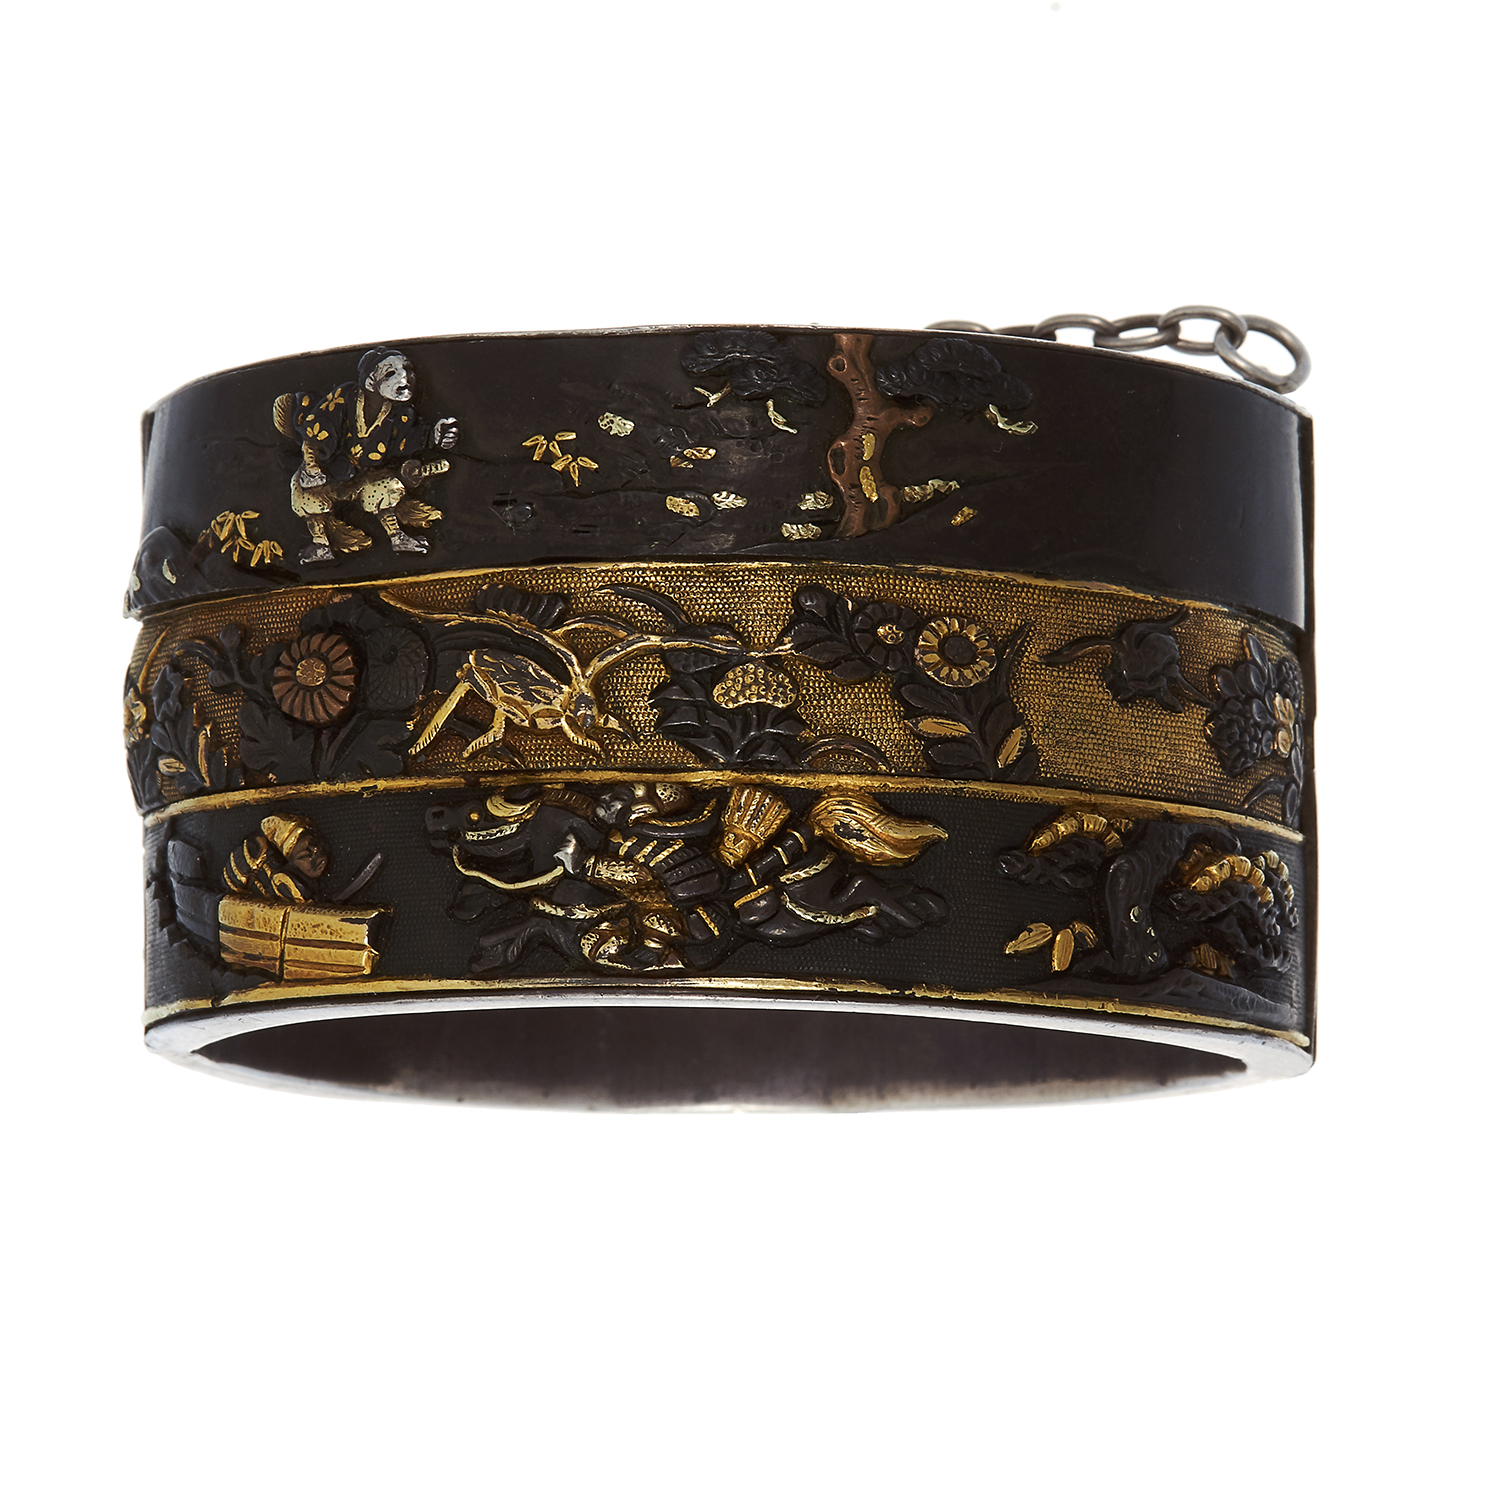 Los 423 - AN ANTIQUE JAPANESE SHAKUDO BANGLE in gold and silver, featuring high relief decoration depicting